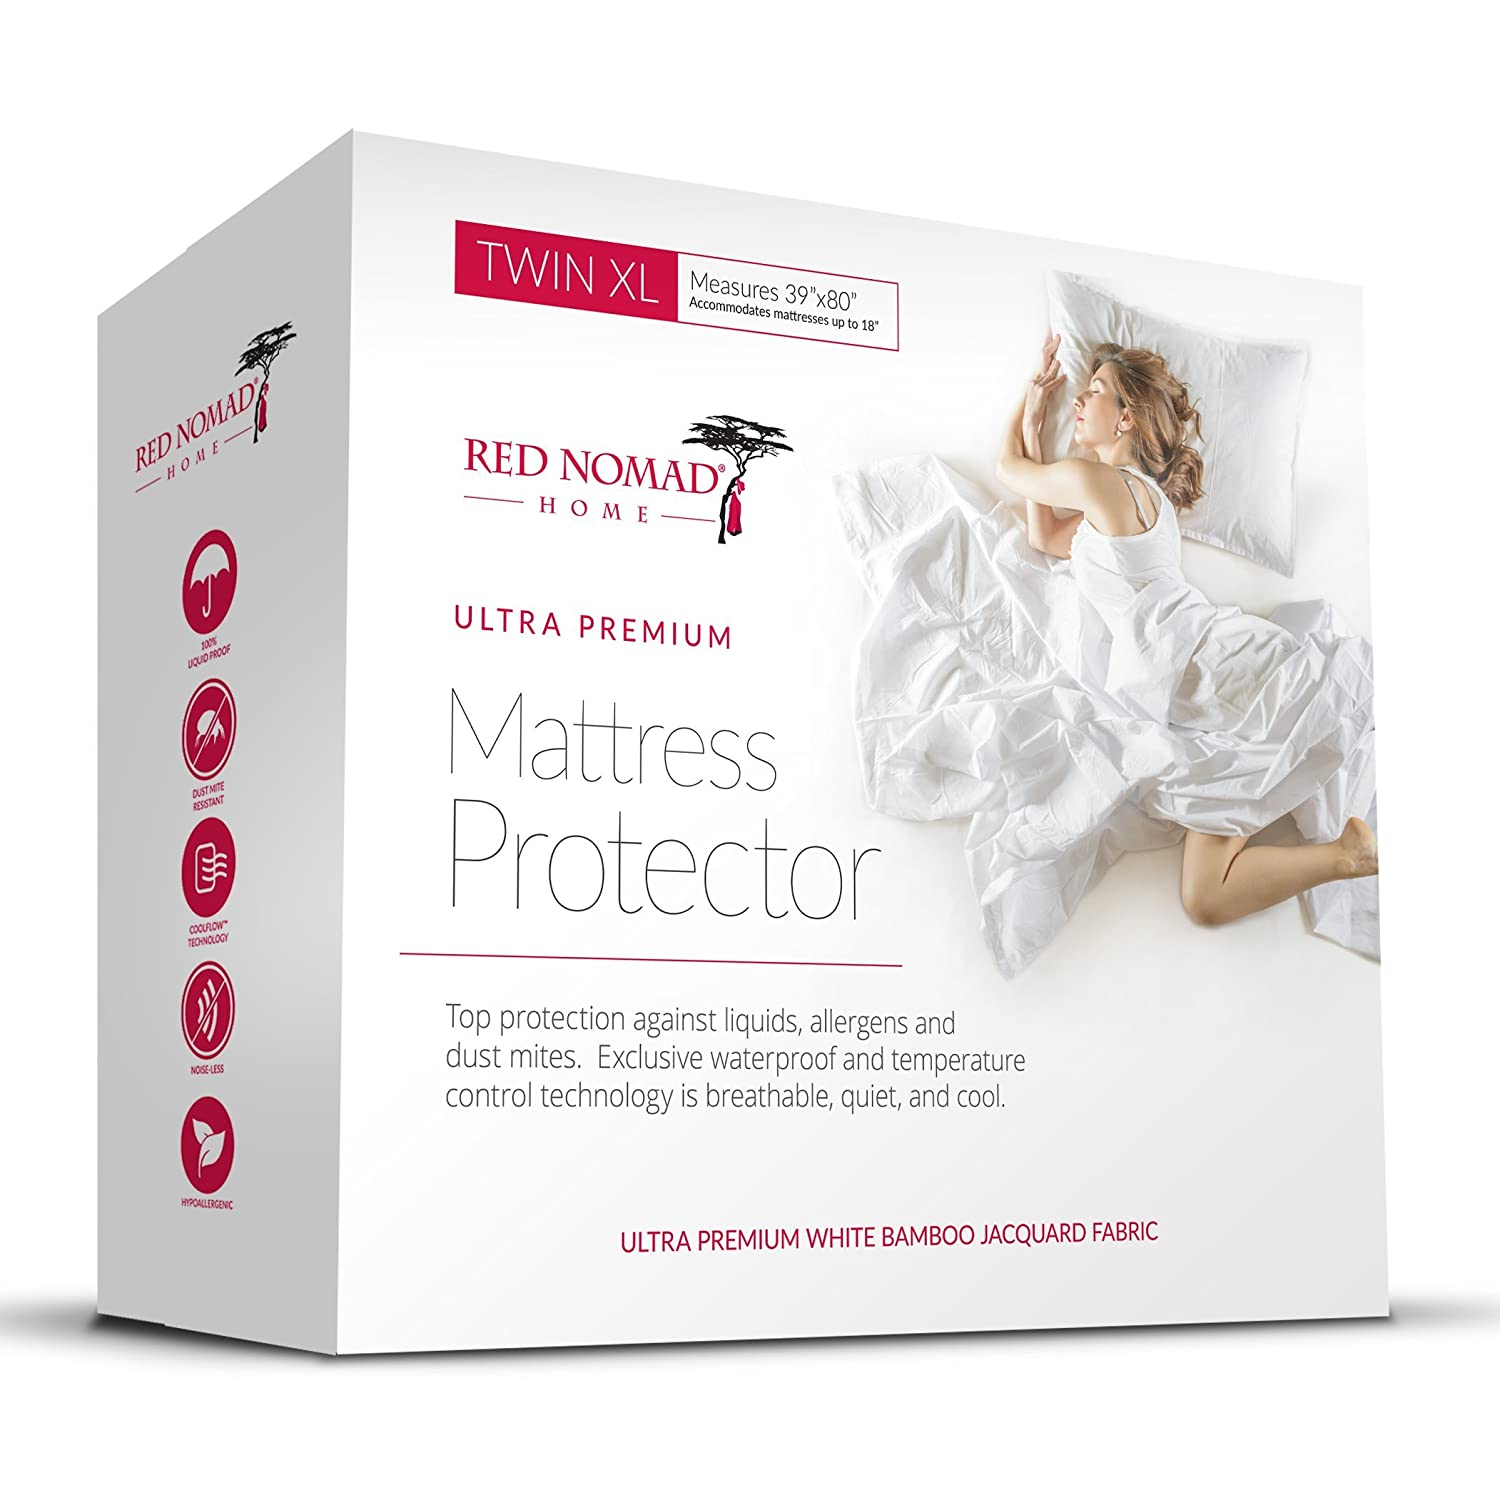 Red Nomad Bamboo Hypoallergenic Mattress Protector Breathable Cool Cycle Technology for Maximum Circulation & Comfort - Twin XL Size